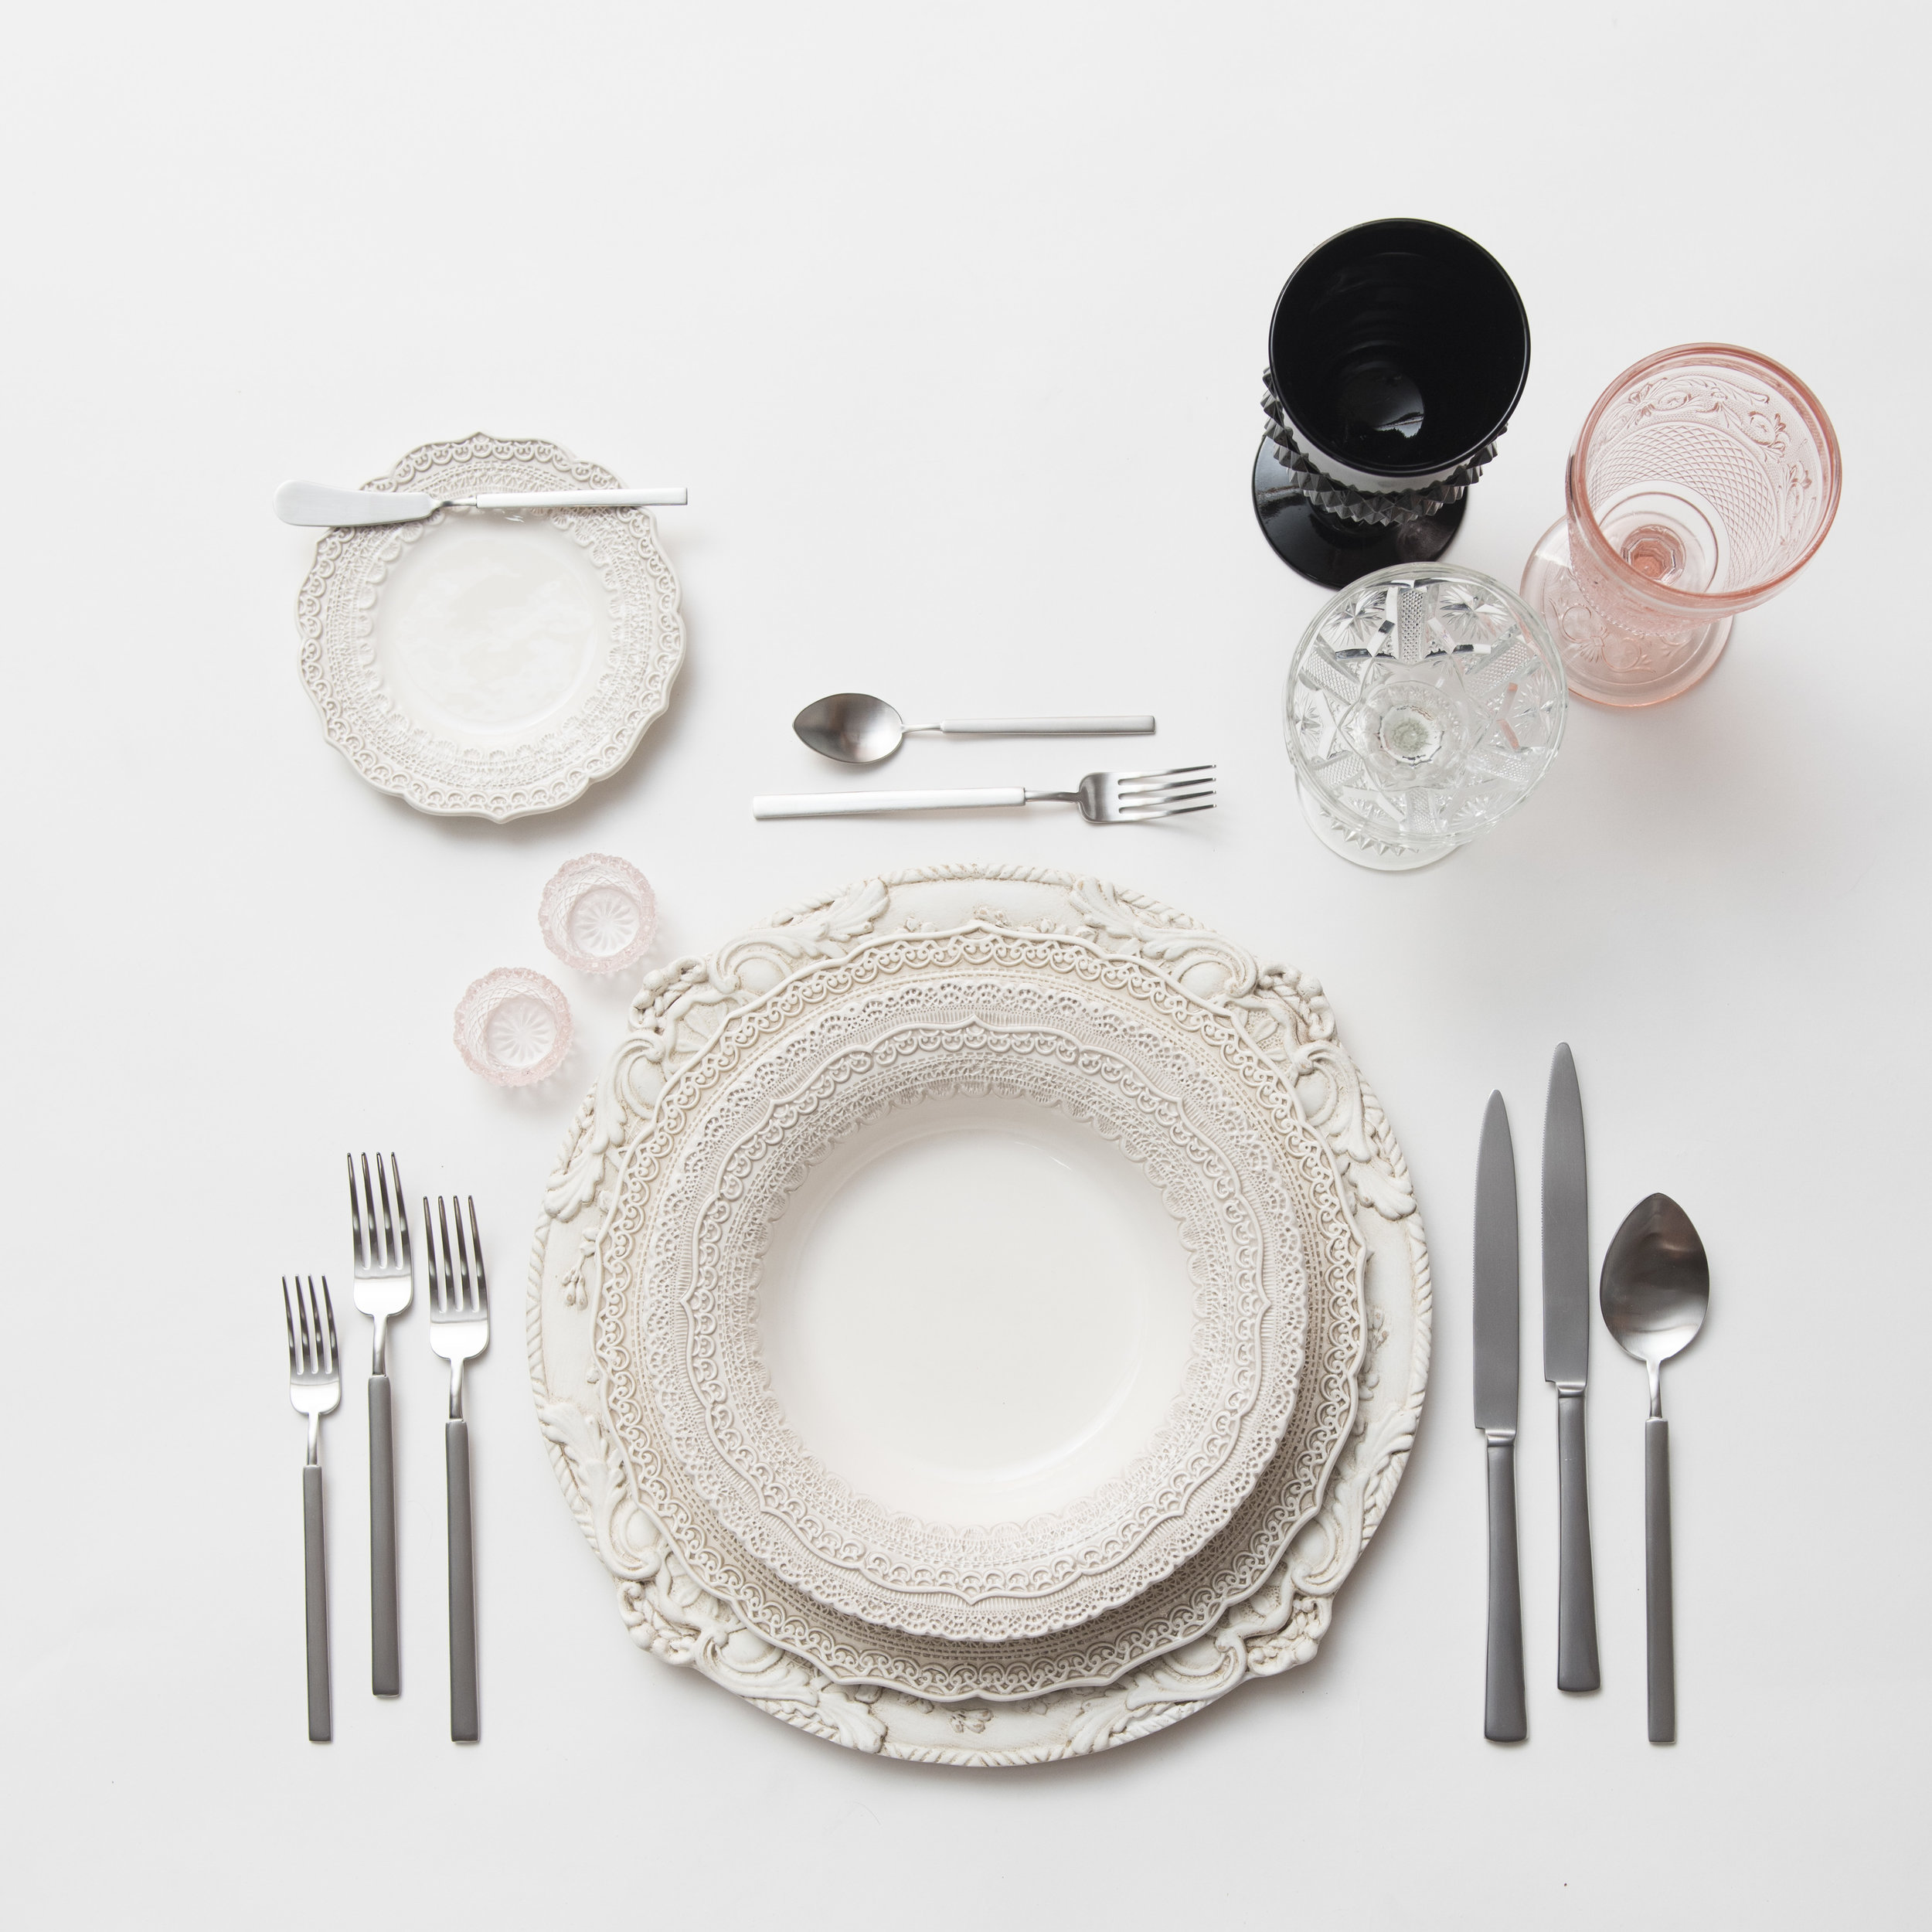 RENT: Verona Chargers in Antique White + Lace Dinnerware in White + Axel Flatware in Matte Silver + Black/Pink Vintage Goblets + Vintage Champagne Coupe + Pink Crystal Salt Cellars  SHOP:Verona Chargers in Antique White